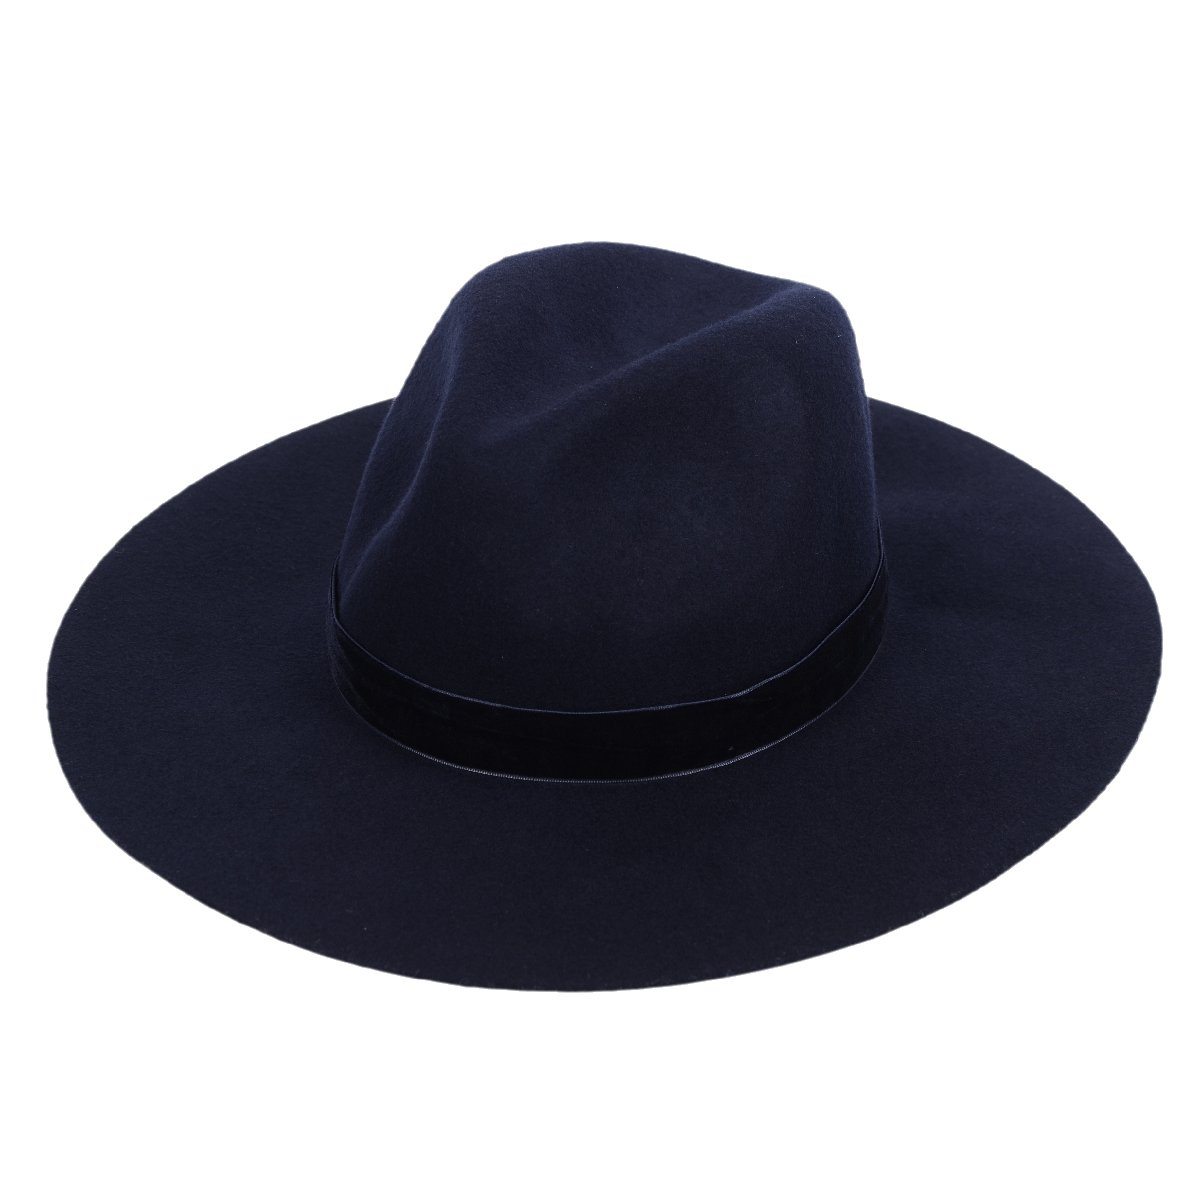 147b82533d7f4 Panama Felt Hat Women s Fedora Floppy Hat with Wide Brim and Chic Band(Navy  Blue)